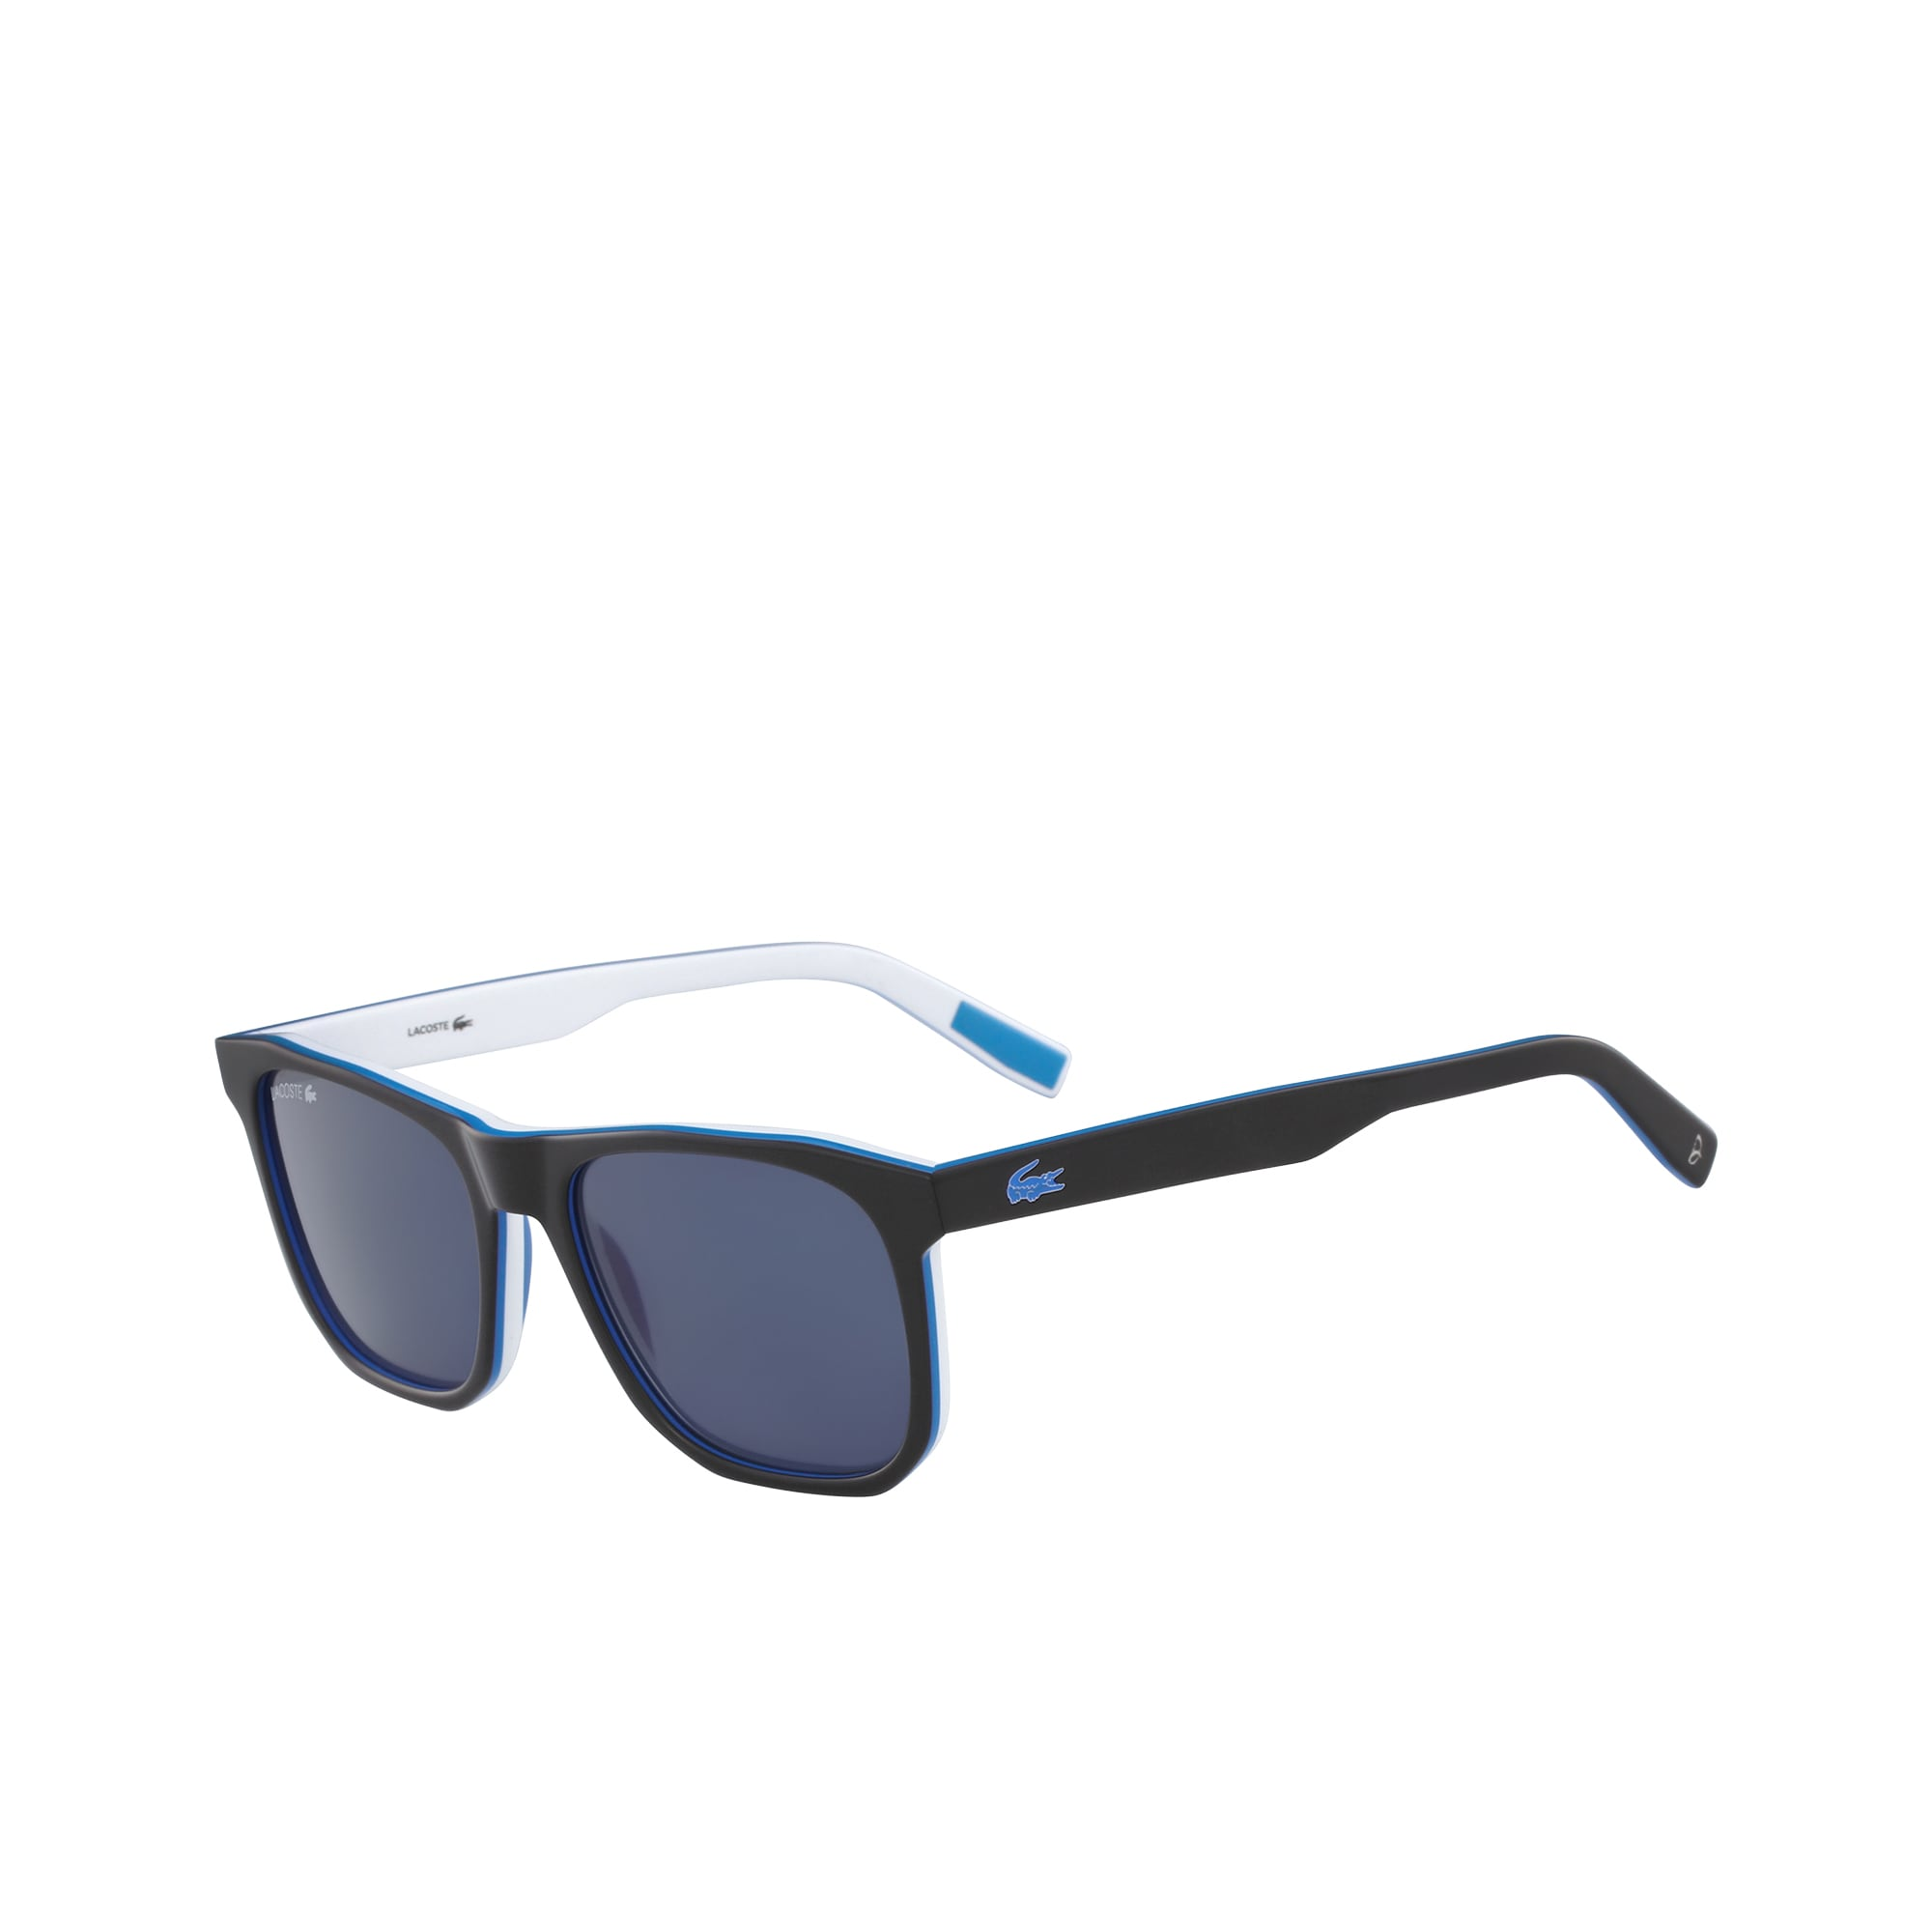 Acetate Stripes & Piping - LT12 Sunglasses